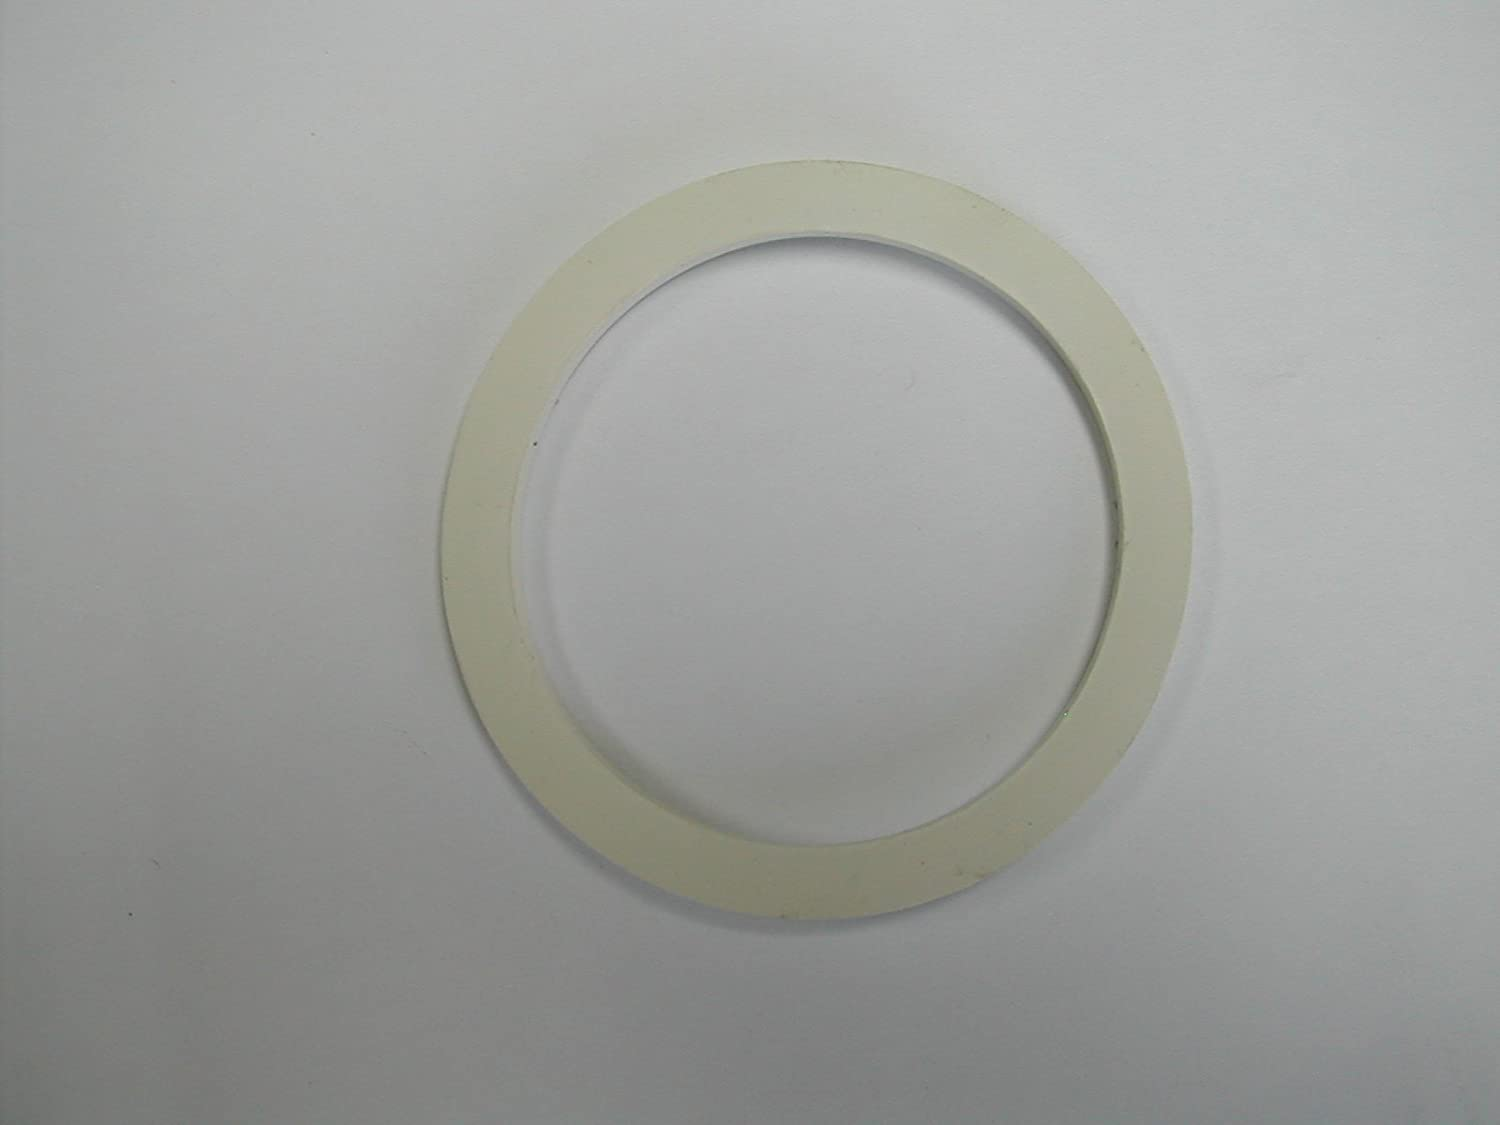 Details about  /10 Pcs Silicone Sealing Rings Gaskets 1//2//3//6//9//12-Cup For Moka Express Pots